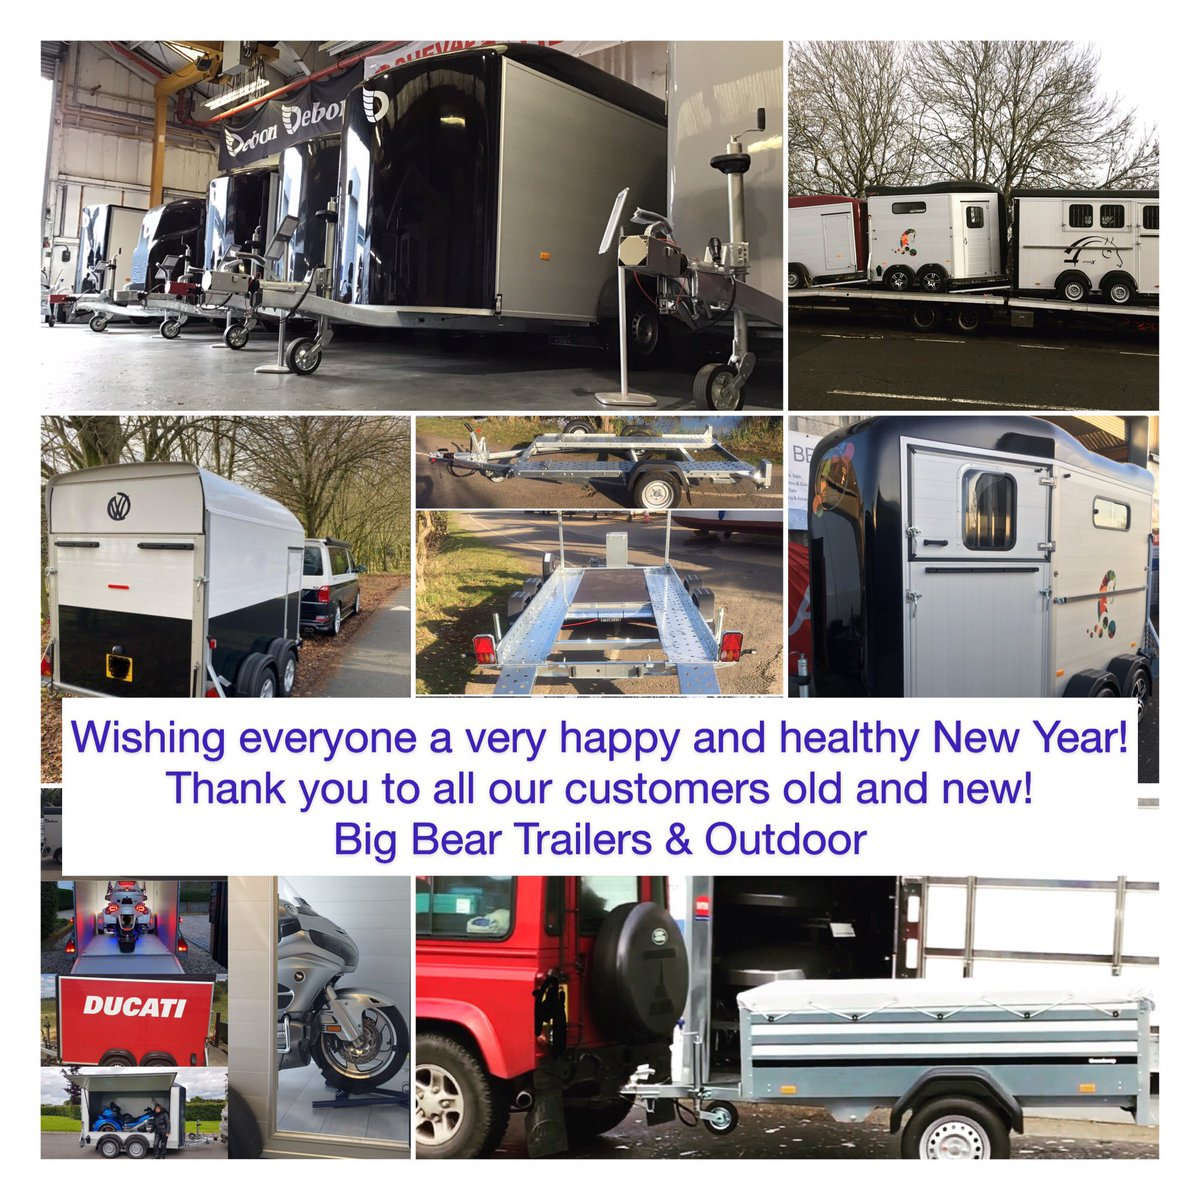 Wishing everyone a very Happy New Year! We reopen on the 2nd January and look forward to seeing you then. Best wishes from all of us at the Big Bear Trailers & Outdoor Team #anssems #brenderup #chevalliberte #chevalliberté #debontrailers #nugenttrailers #woodfordtrailerspic.twitter.com/FKp0DfHNB5